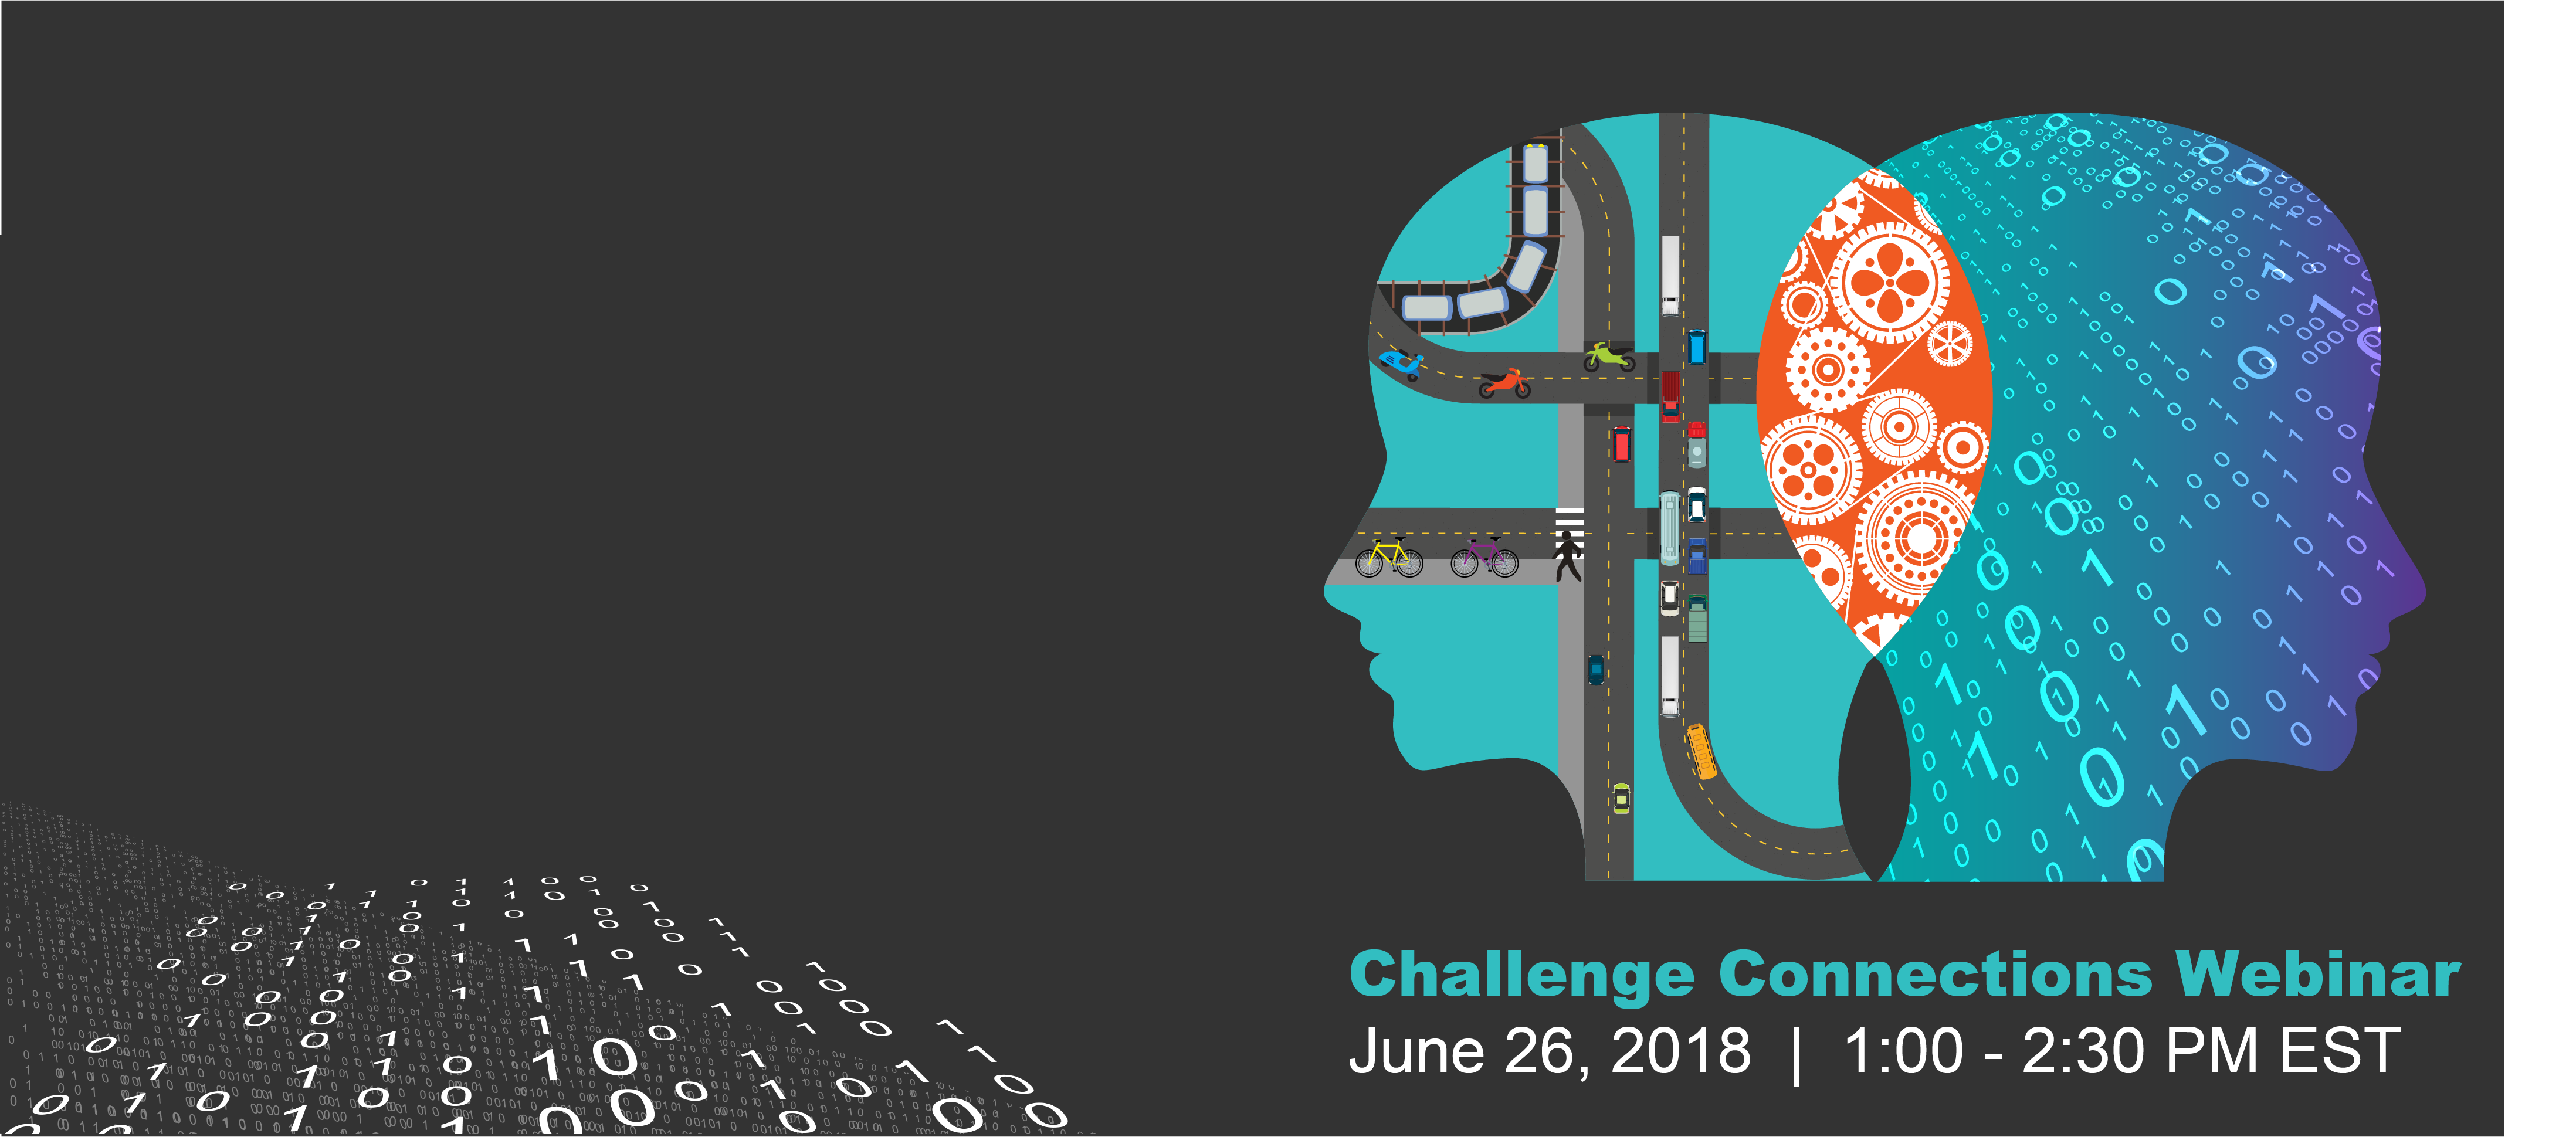 Solving for Safety Upcoming webinar on June 26: Challenge Connections